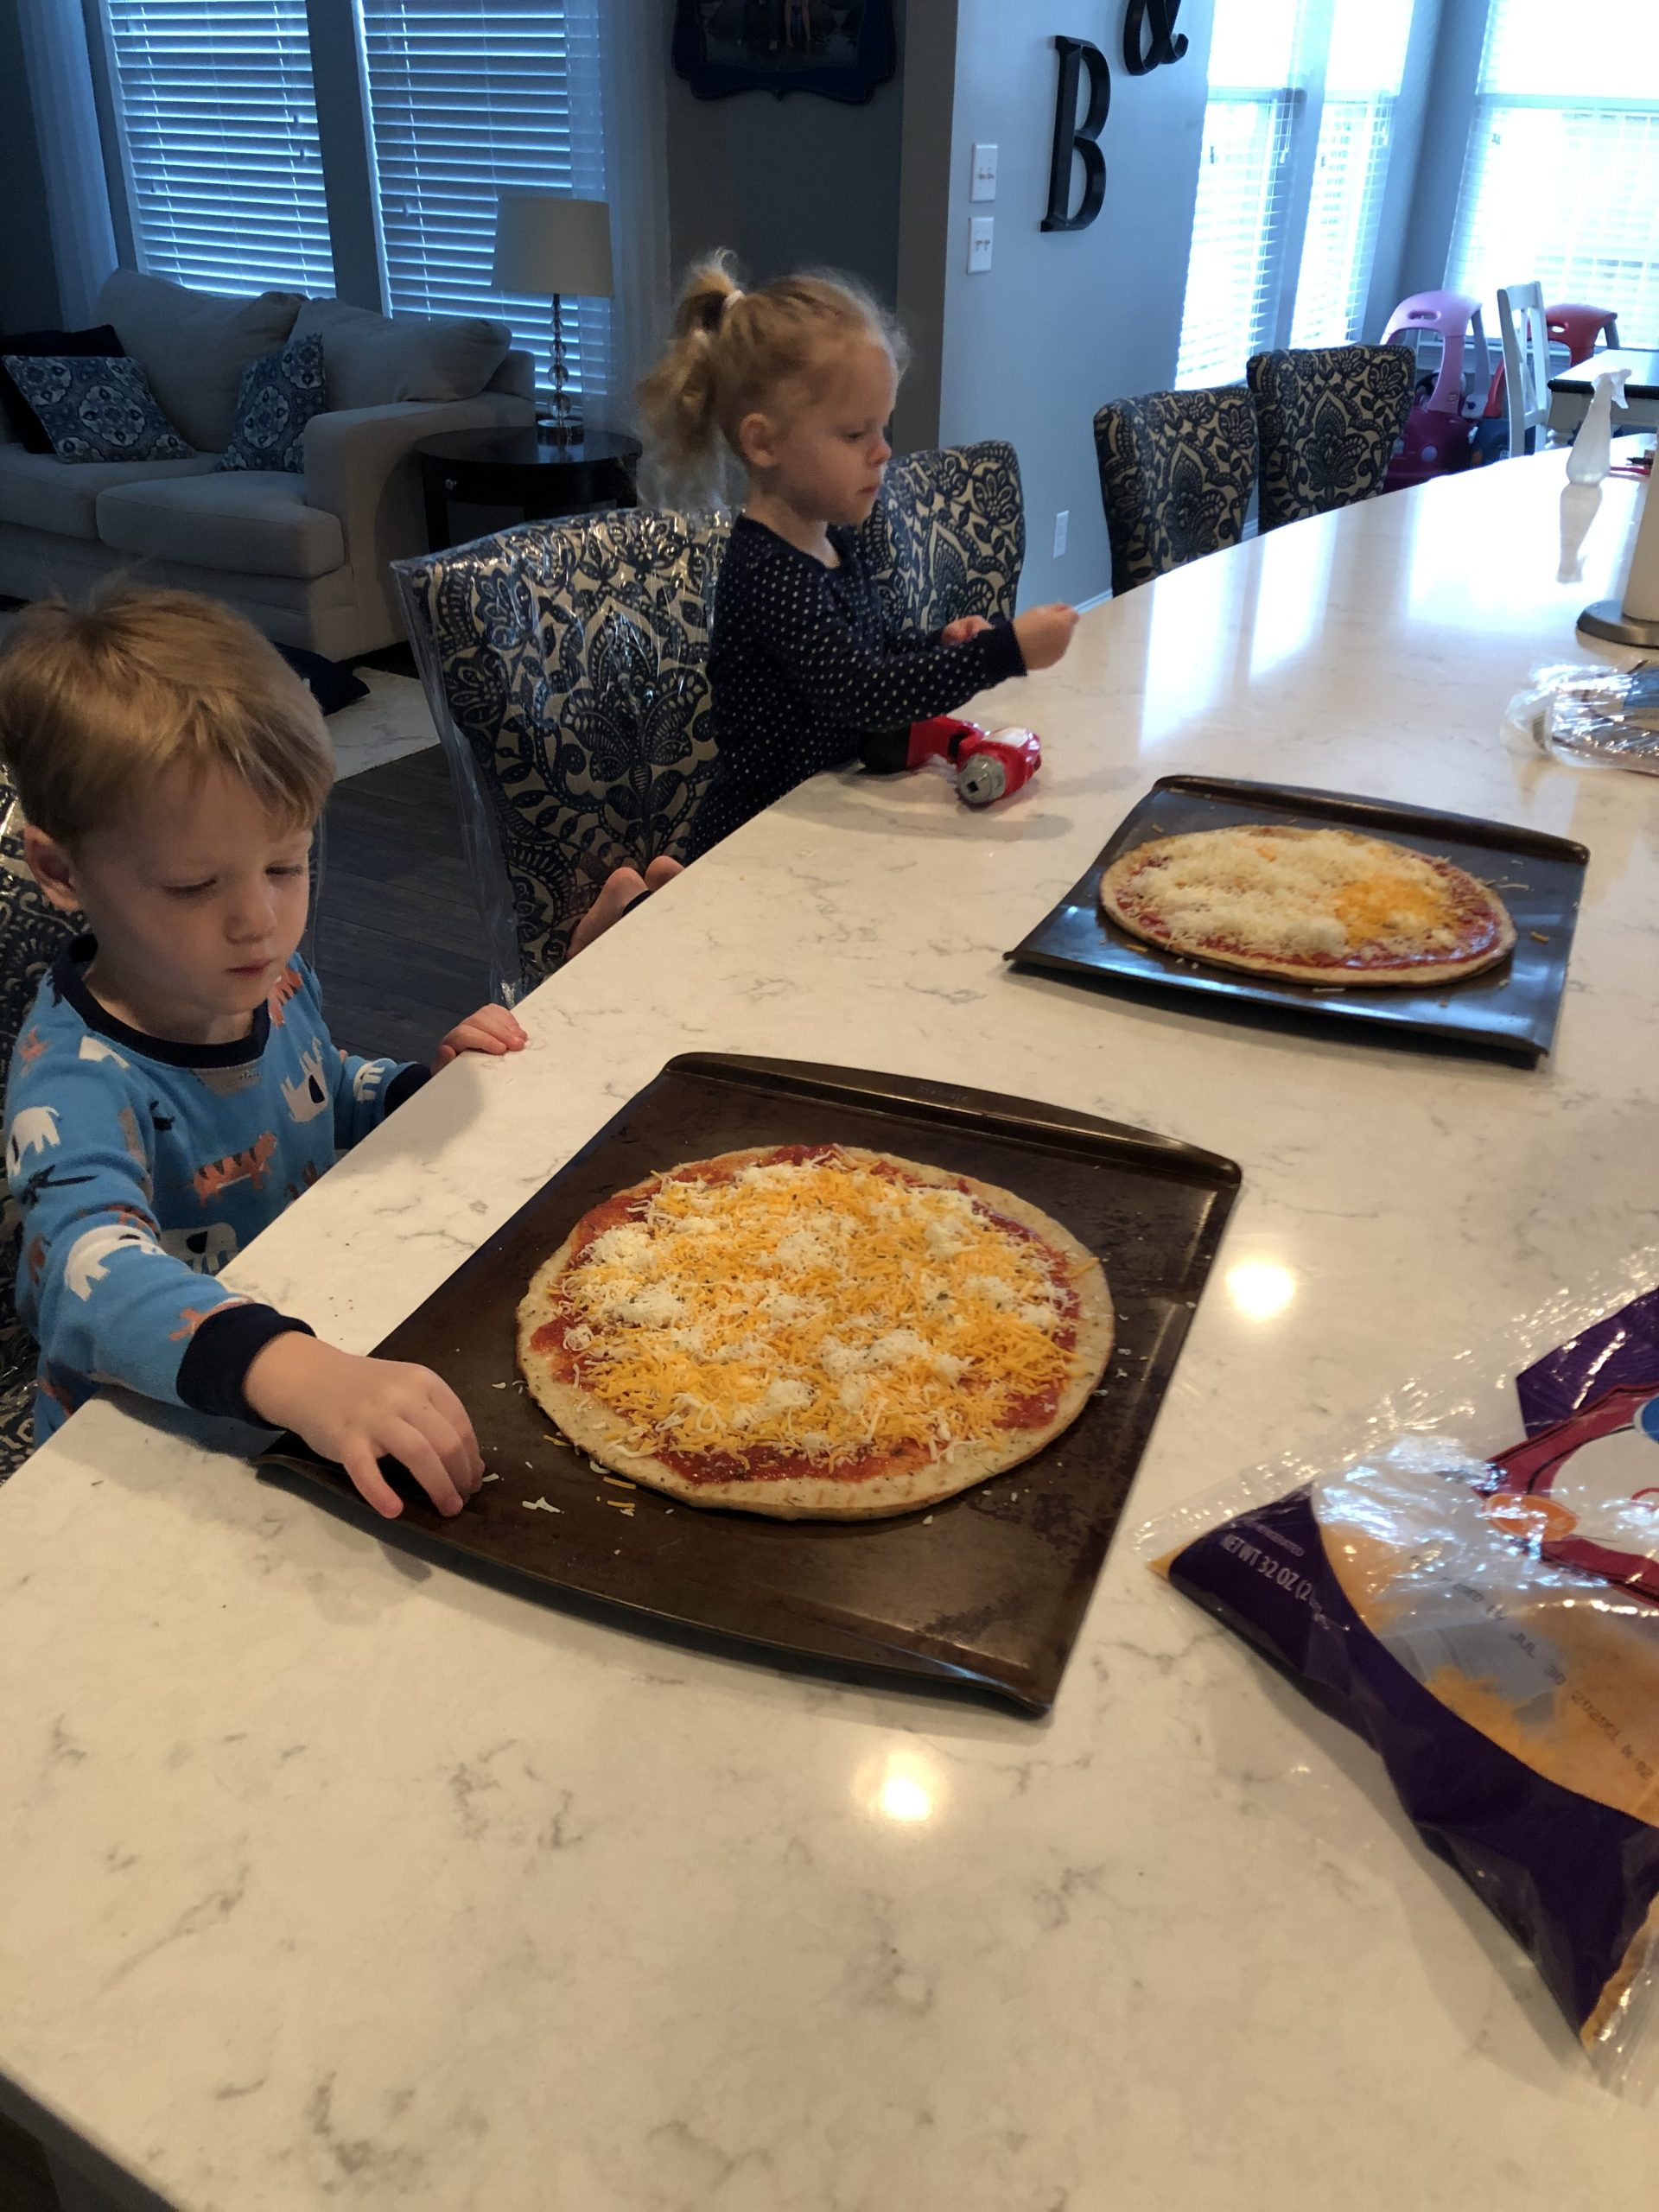 Boy and girl helping make pizzas.